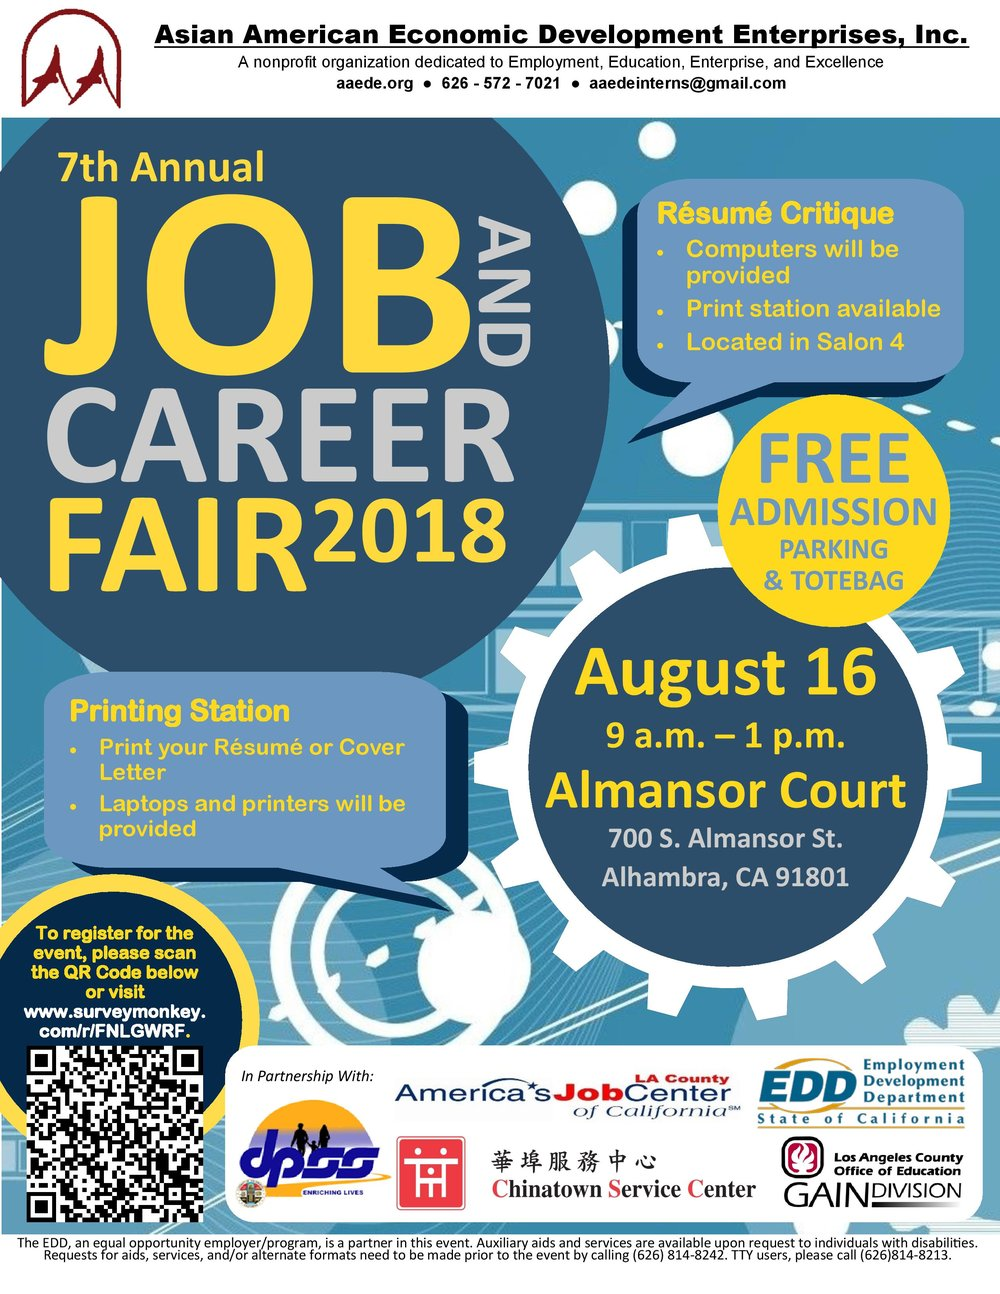 7th annual job and career fair 2018 - August 16th, 2018